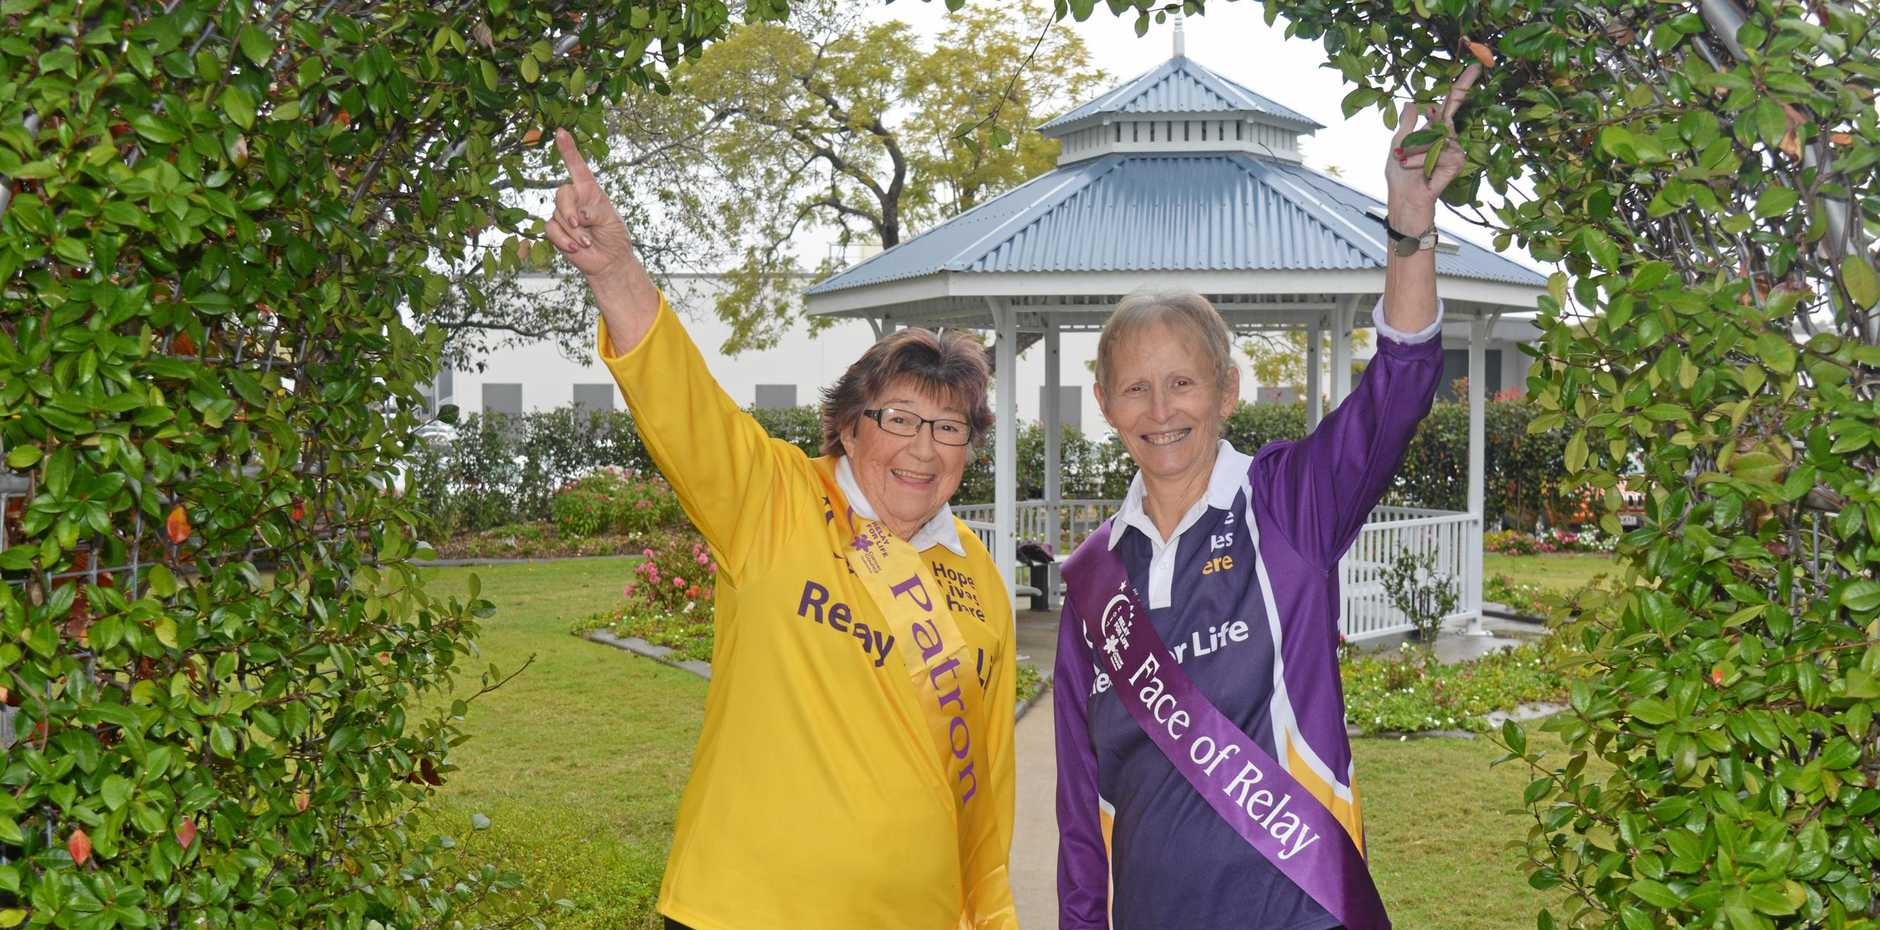 RAISING AWARENESS: Patron Jenny Ryan and 2017 Face of the Relay Barbara Martin are ready for another year of relay.